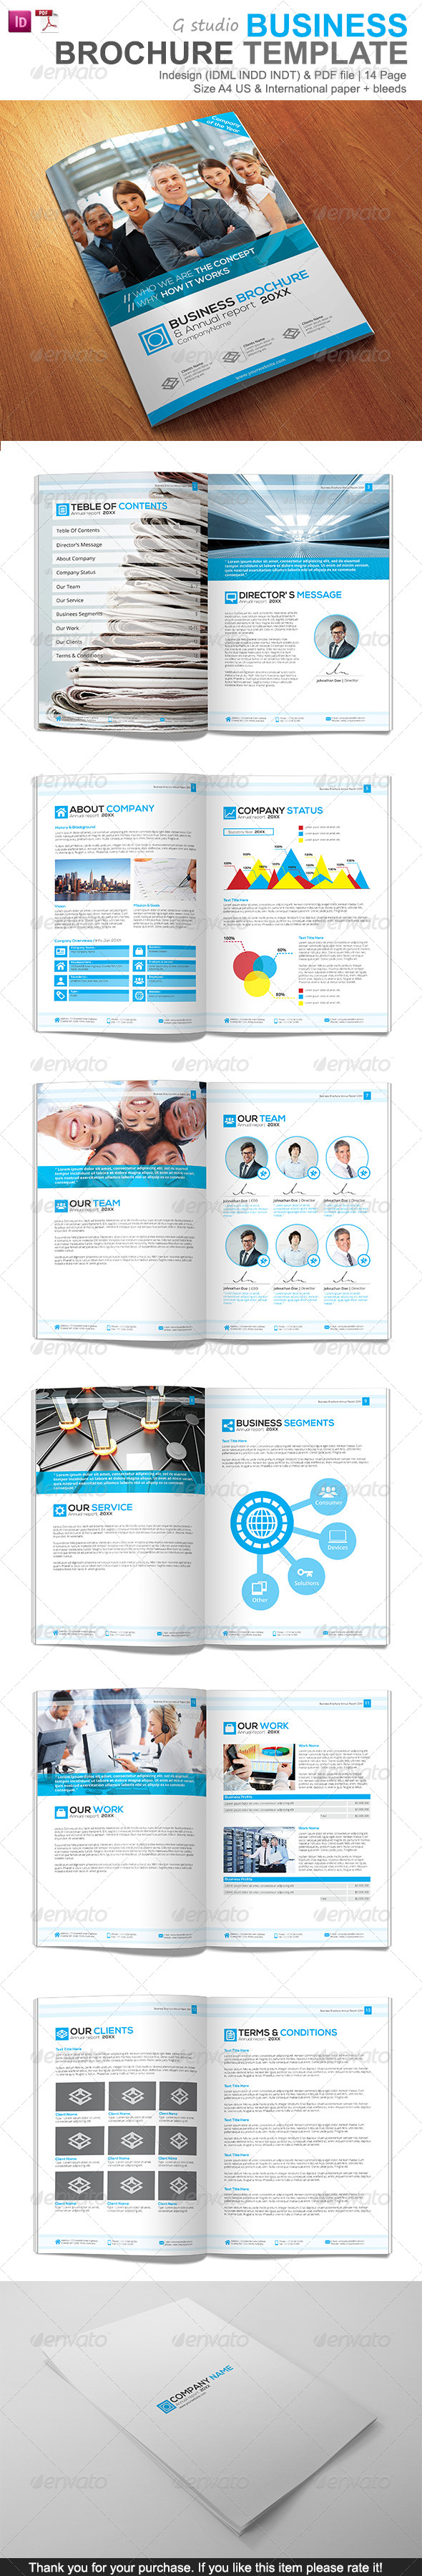 Gstudio Business Brochure Template - Corporate Brochures